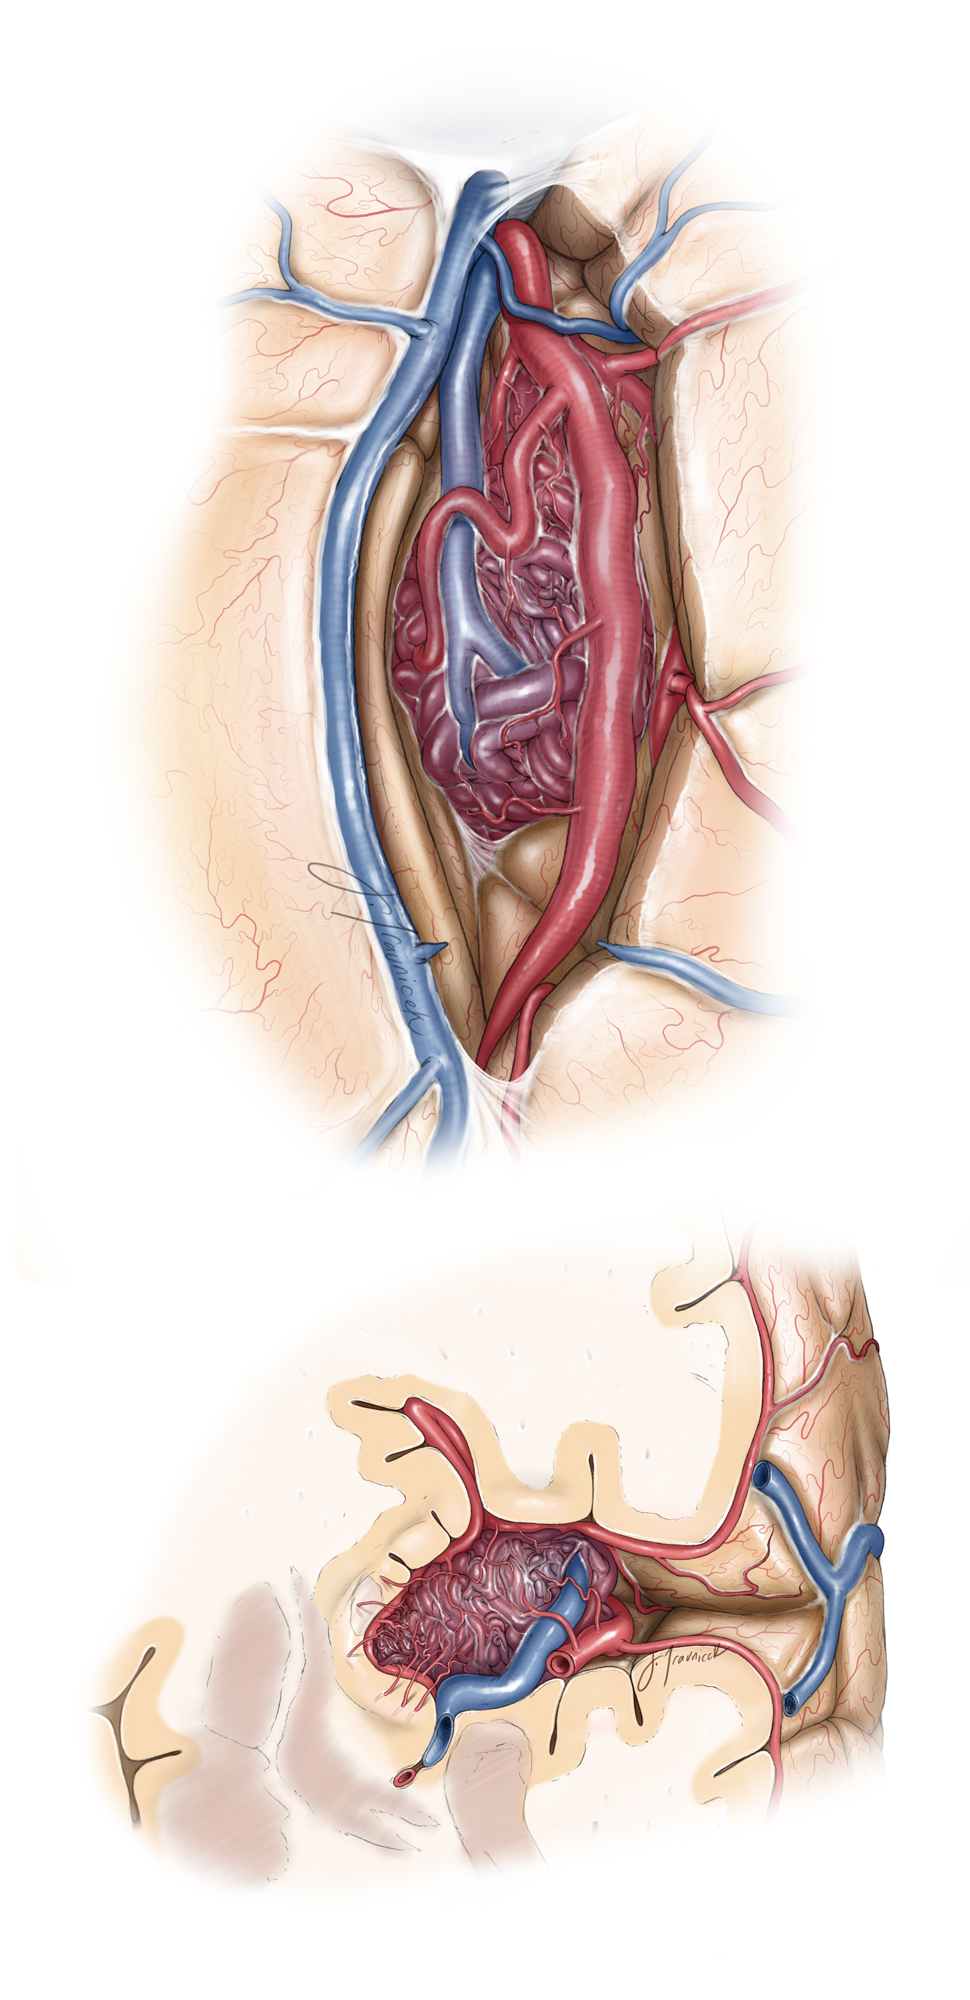 Figure 12: The pathoanatomy of a typical insular AVM on the left-side is demonstrated. Note the M2 feeding arteries (surgeon's view, top sketch). The coronal image (bottom sketch) illustrates the route of the draining vein and emphasizes the contribution of the deep feeding lentriculostriate arterioles.